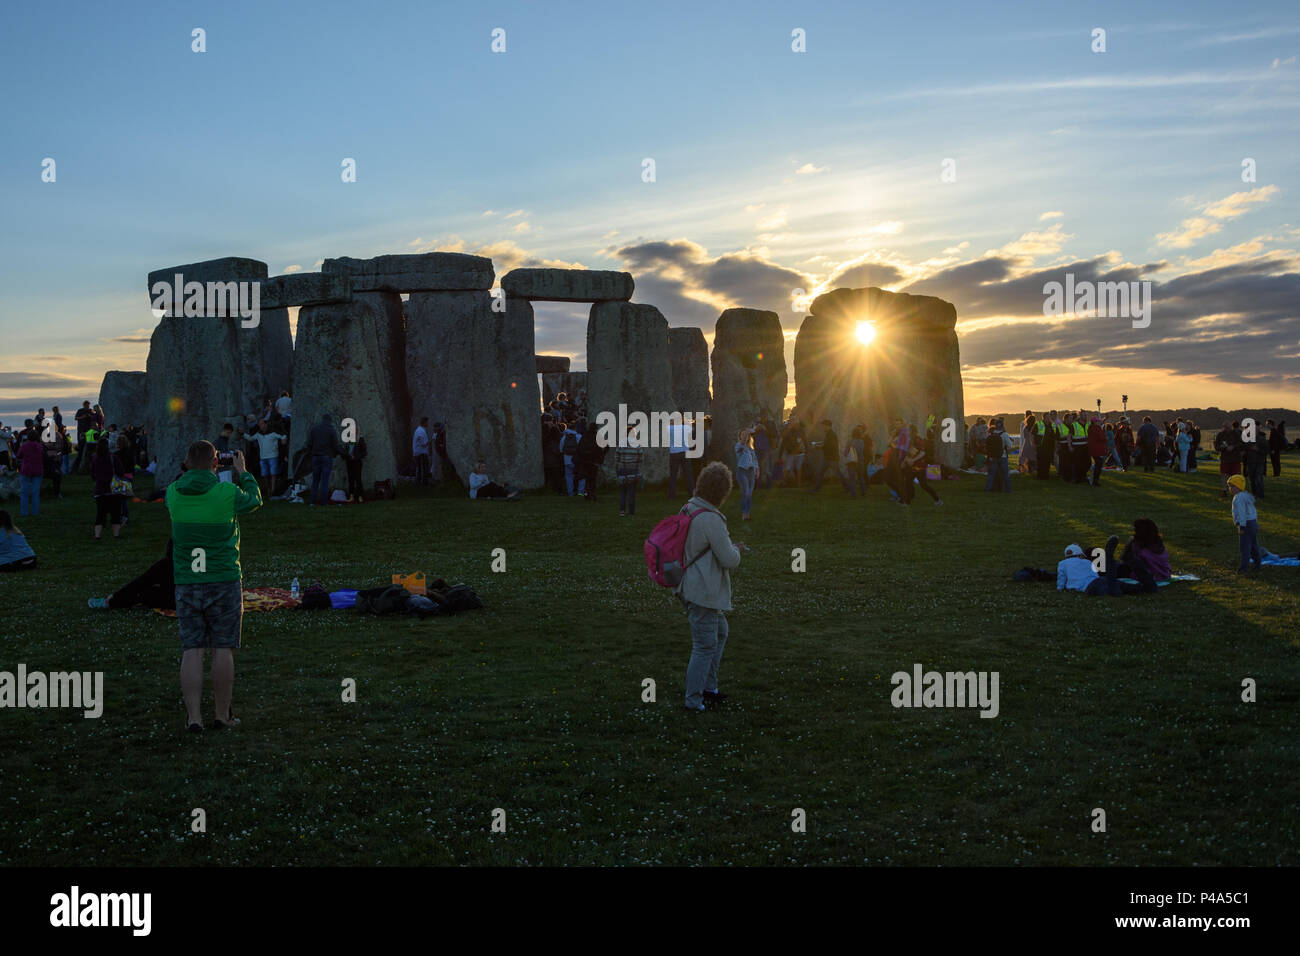 Stonehenge, Amesbury, UK, 20th June 2018,   Setting sun visible between 2 stones at stonehenge on summer solstice  Credit: Estelle Bowden/Alamy Live News.Stock Photo